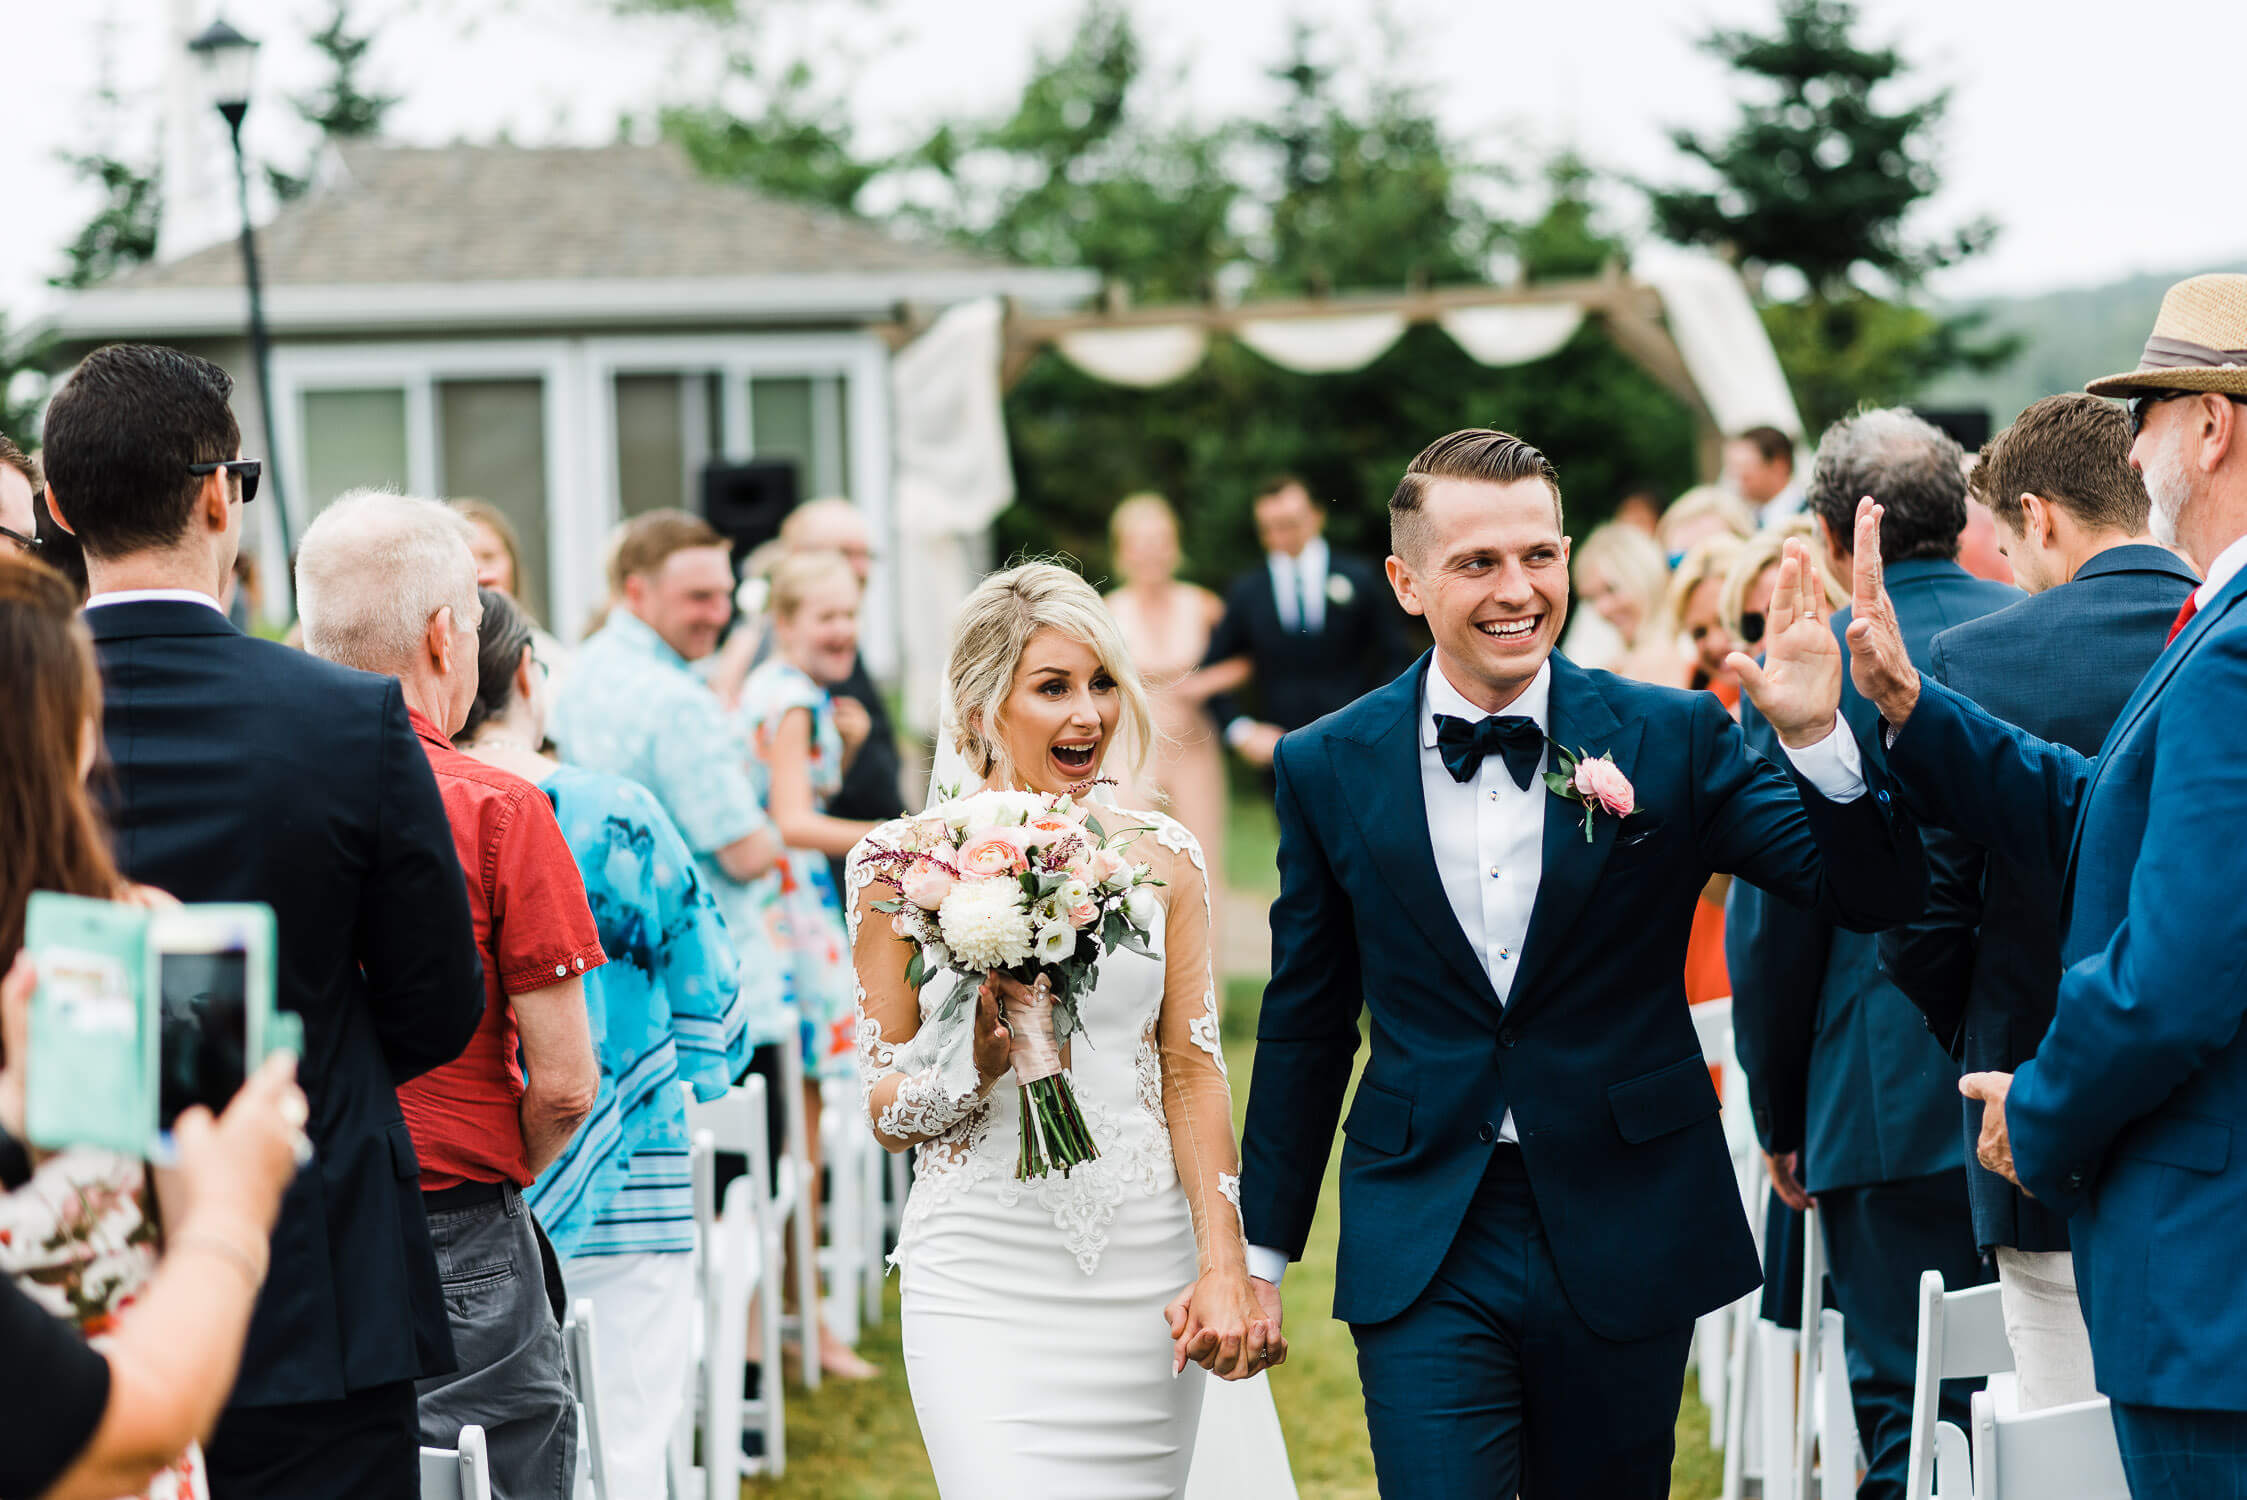 newlyweds excitedly walking down the aisle after their ceremony